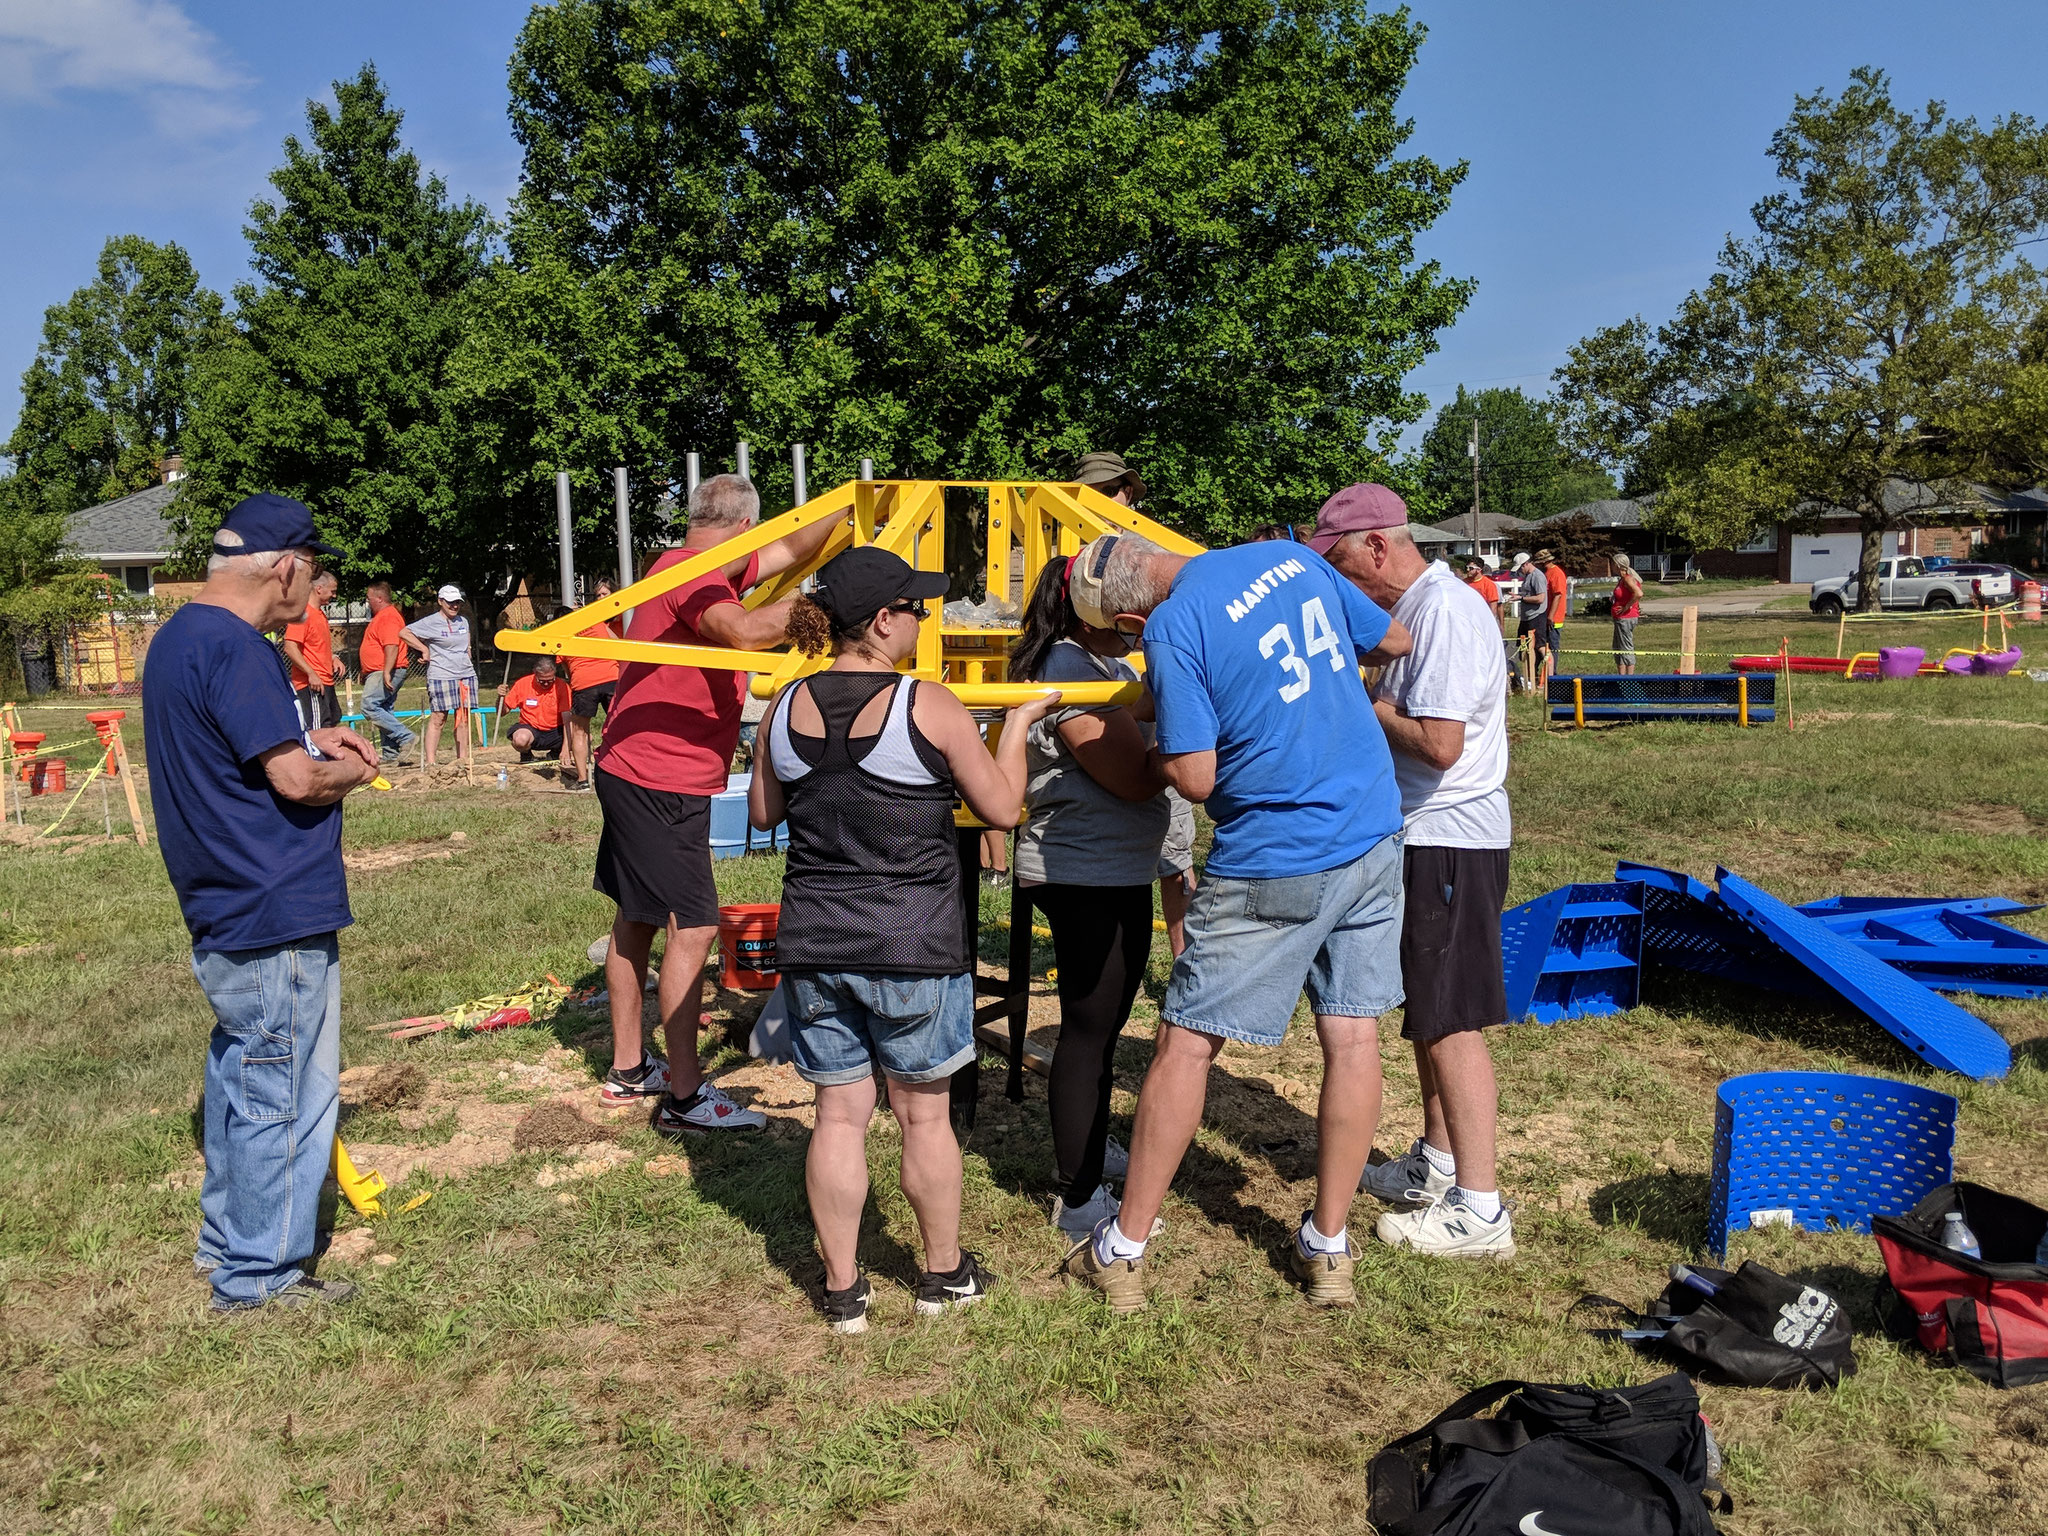 Over 90 community members volunteered to assemble equipment